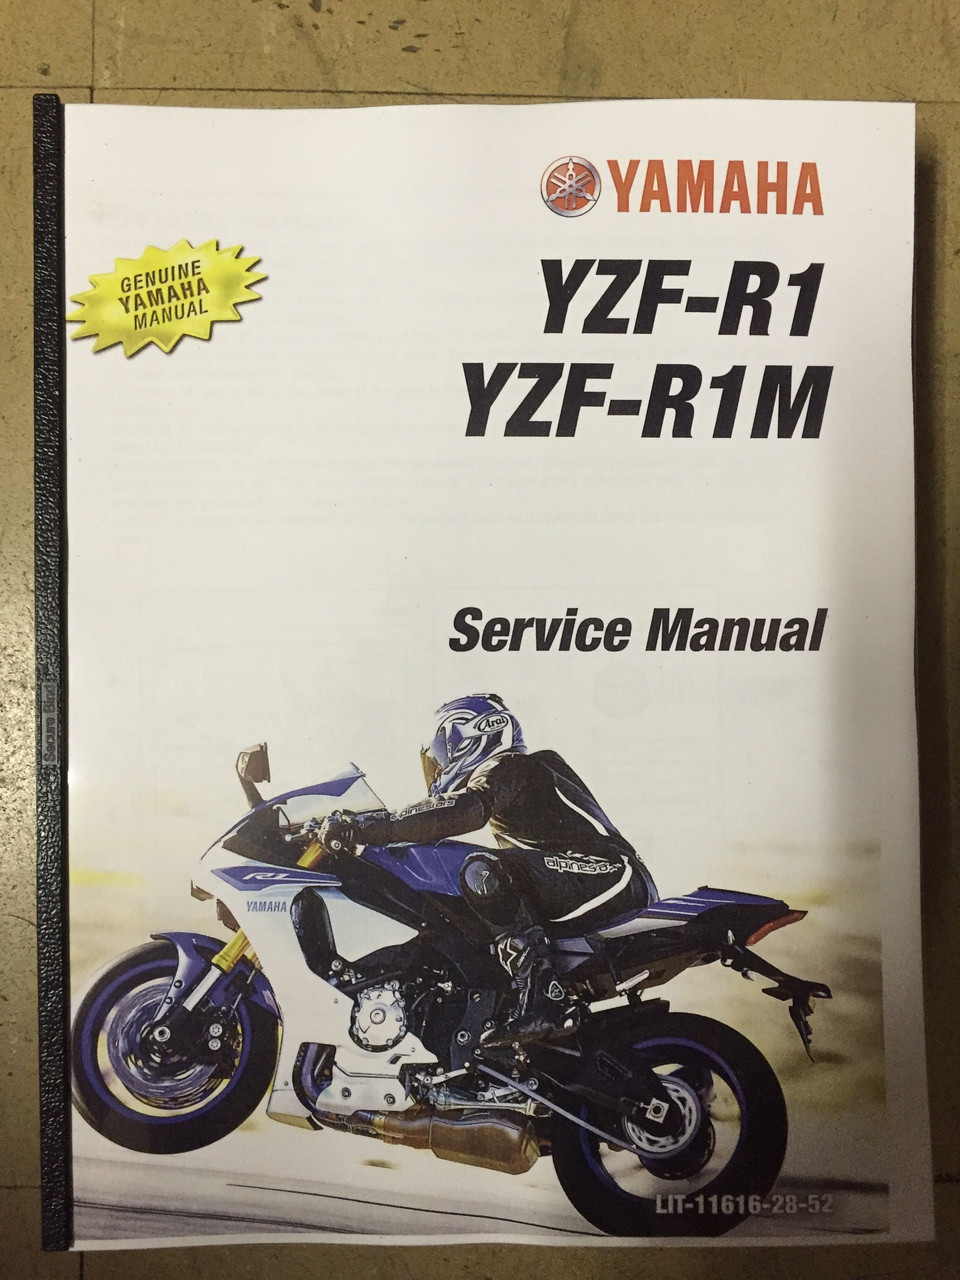 2015 Yamaha YZF-R1 / YZF-R1M Part# LIT-11616-28-52 service shop repair  manual